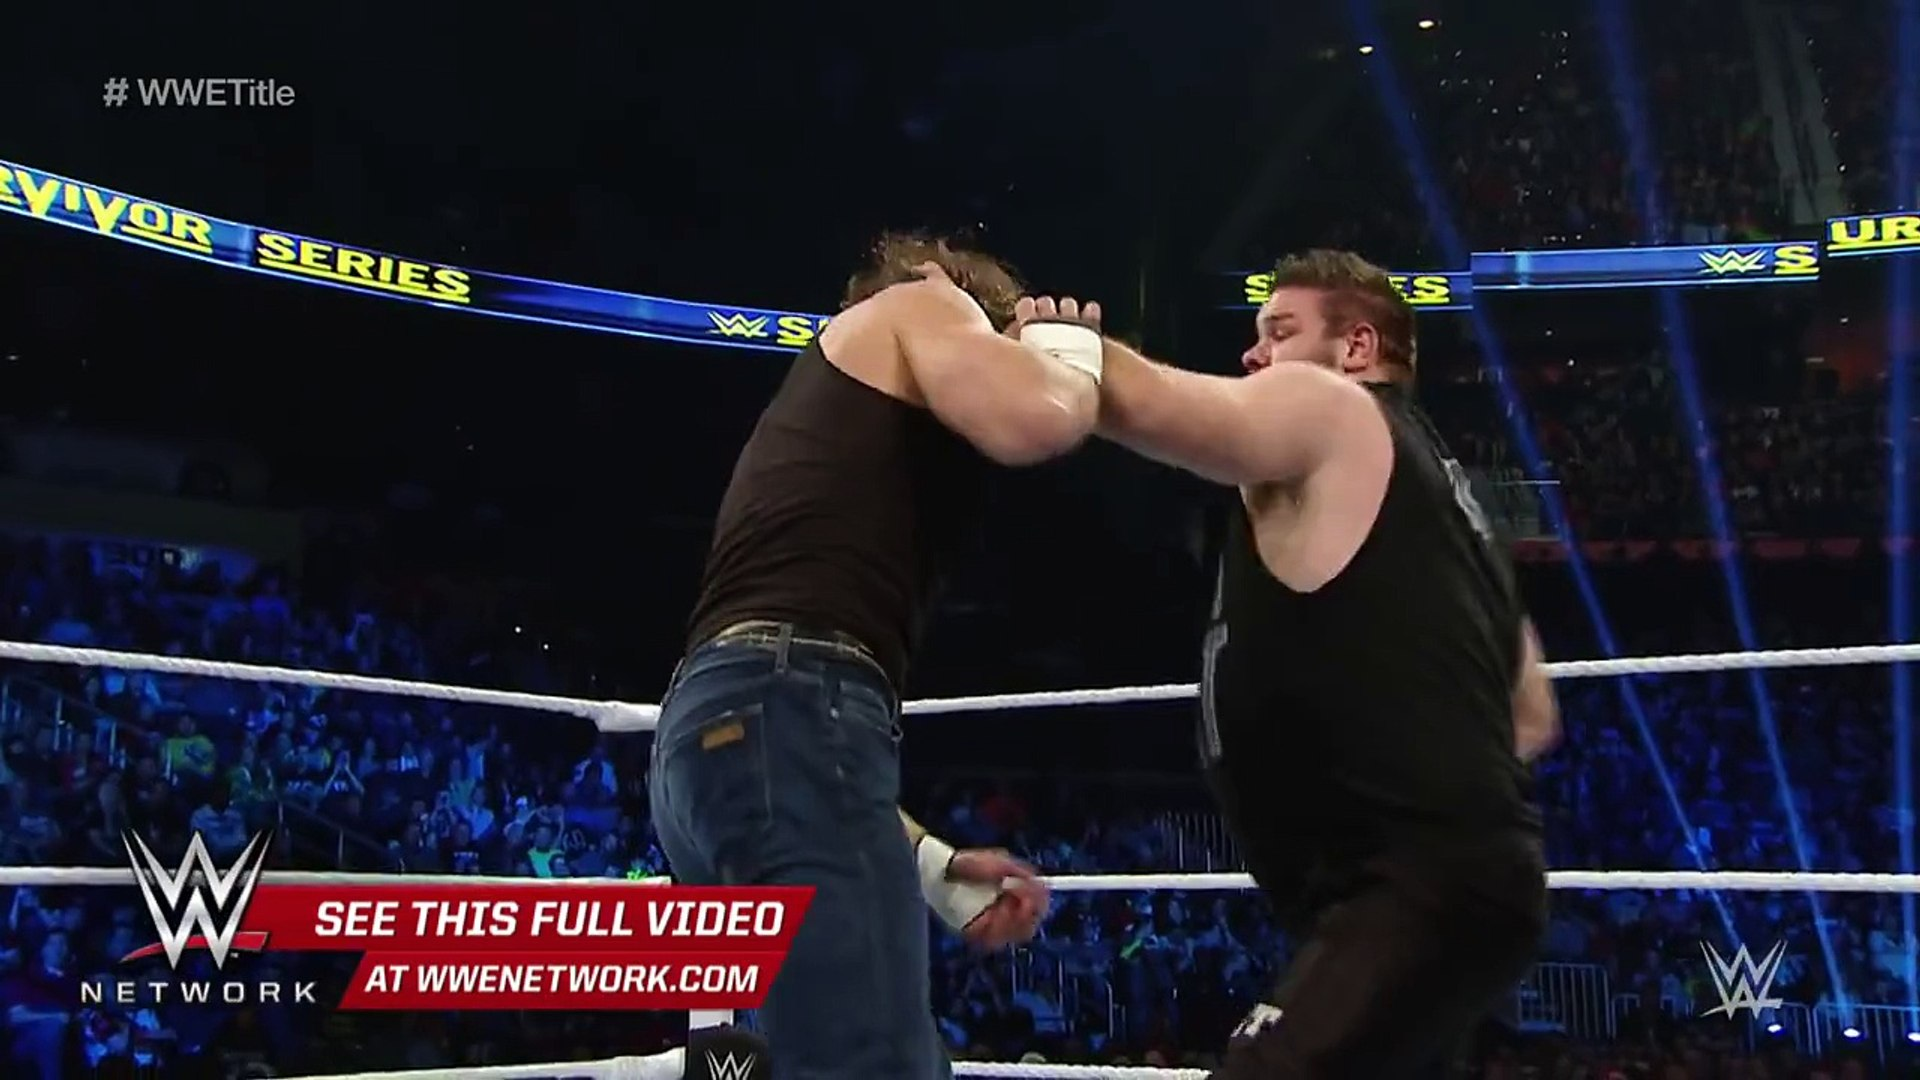 WWE Network׃ Ambrose vs. Owens - WWE World Heavyweight Title Semifinal׃ WWE Survivor Series